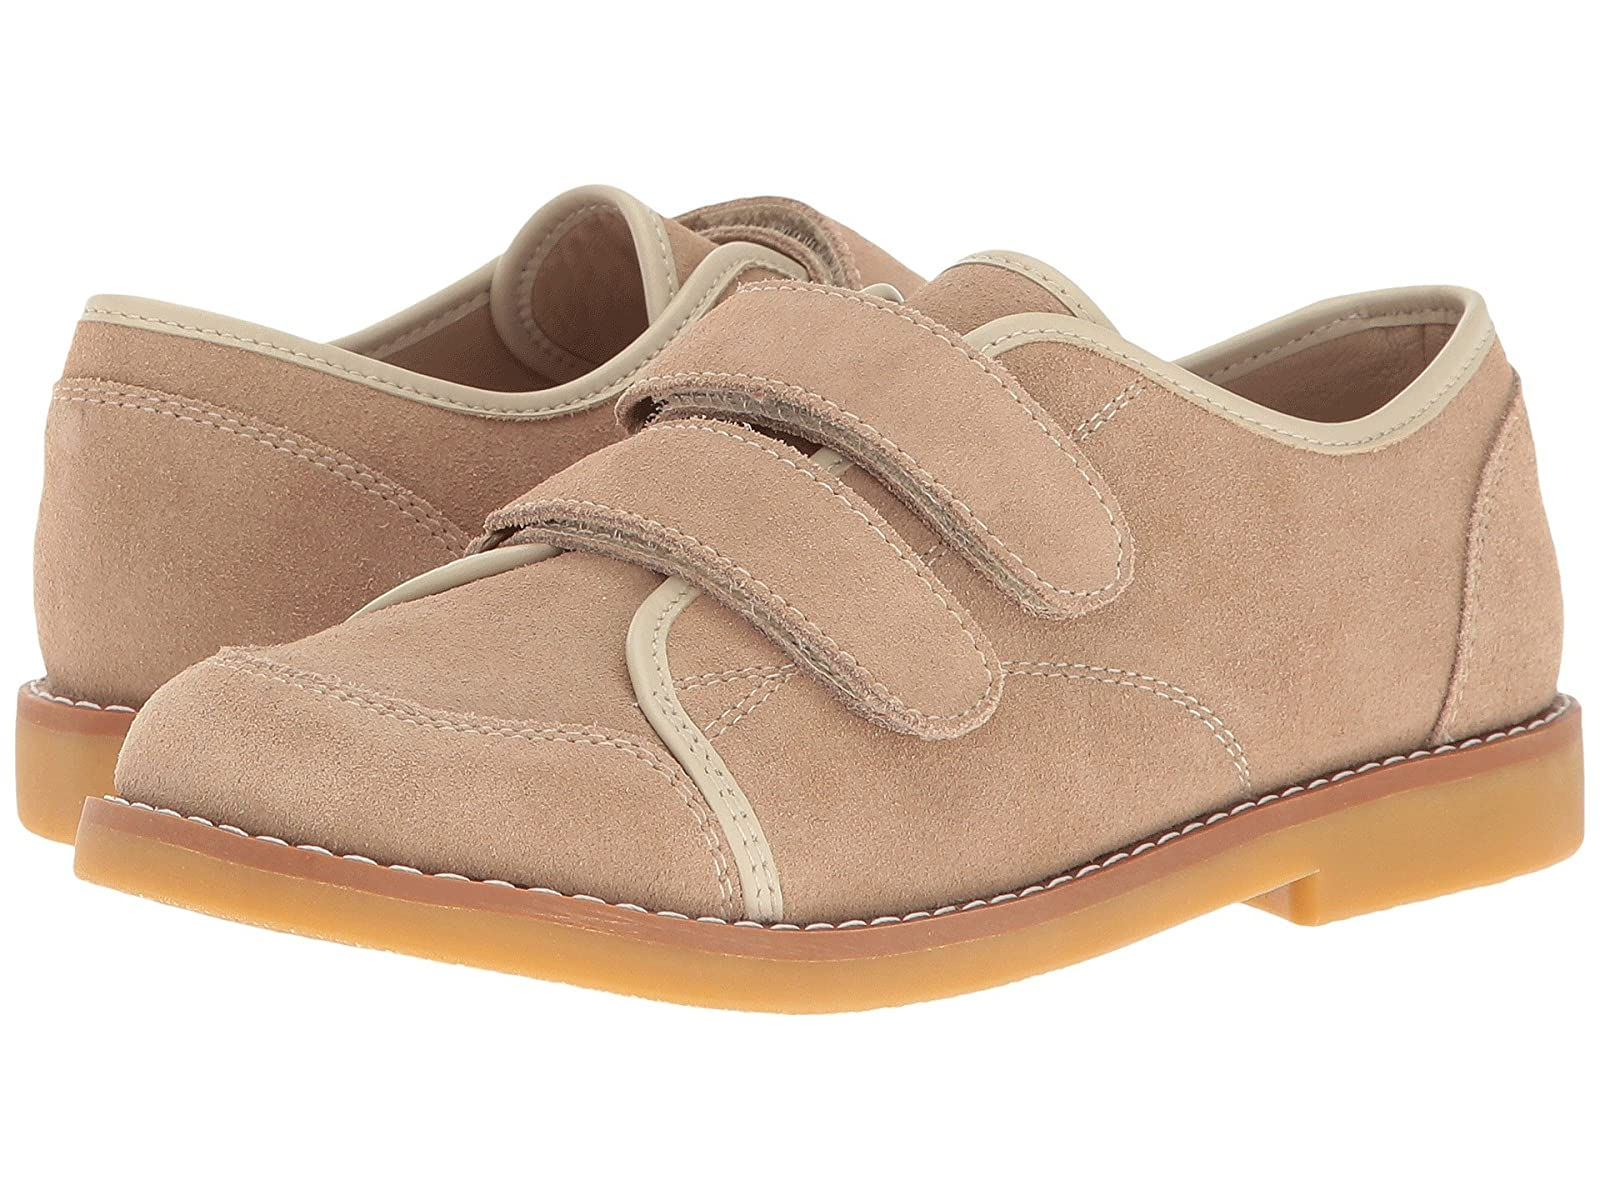 Elephantito Low Top Sneaker (Toddler/Little Kid/Big Kid)Atmospheric grades have affordable shoes